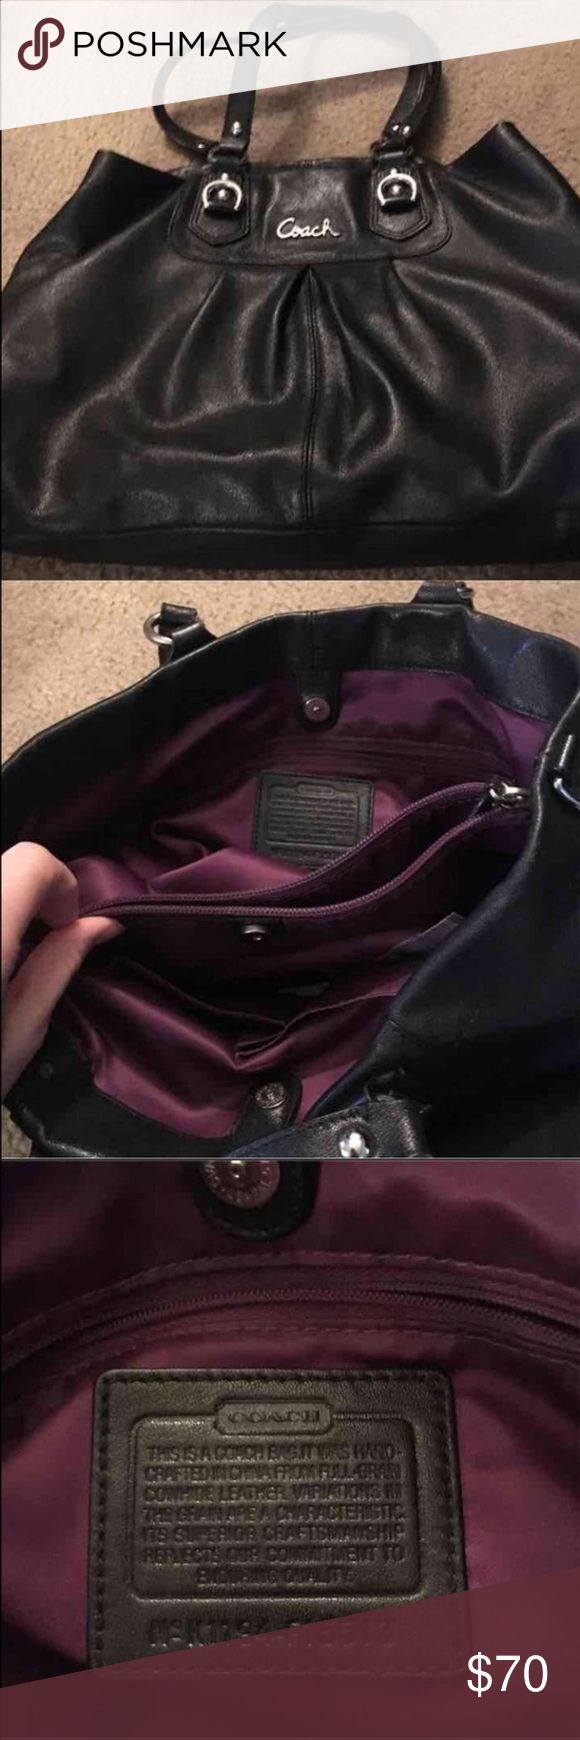 Euc black coach purse Black coach purse in excellent condition. Has purple interior 😊 also there's a tiny white spot on the front right hand side of bag but not notable at all. Open to reasonable offers 😊 Coach Bags Shoulder Bags